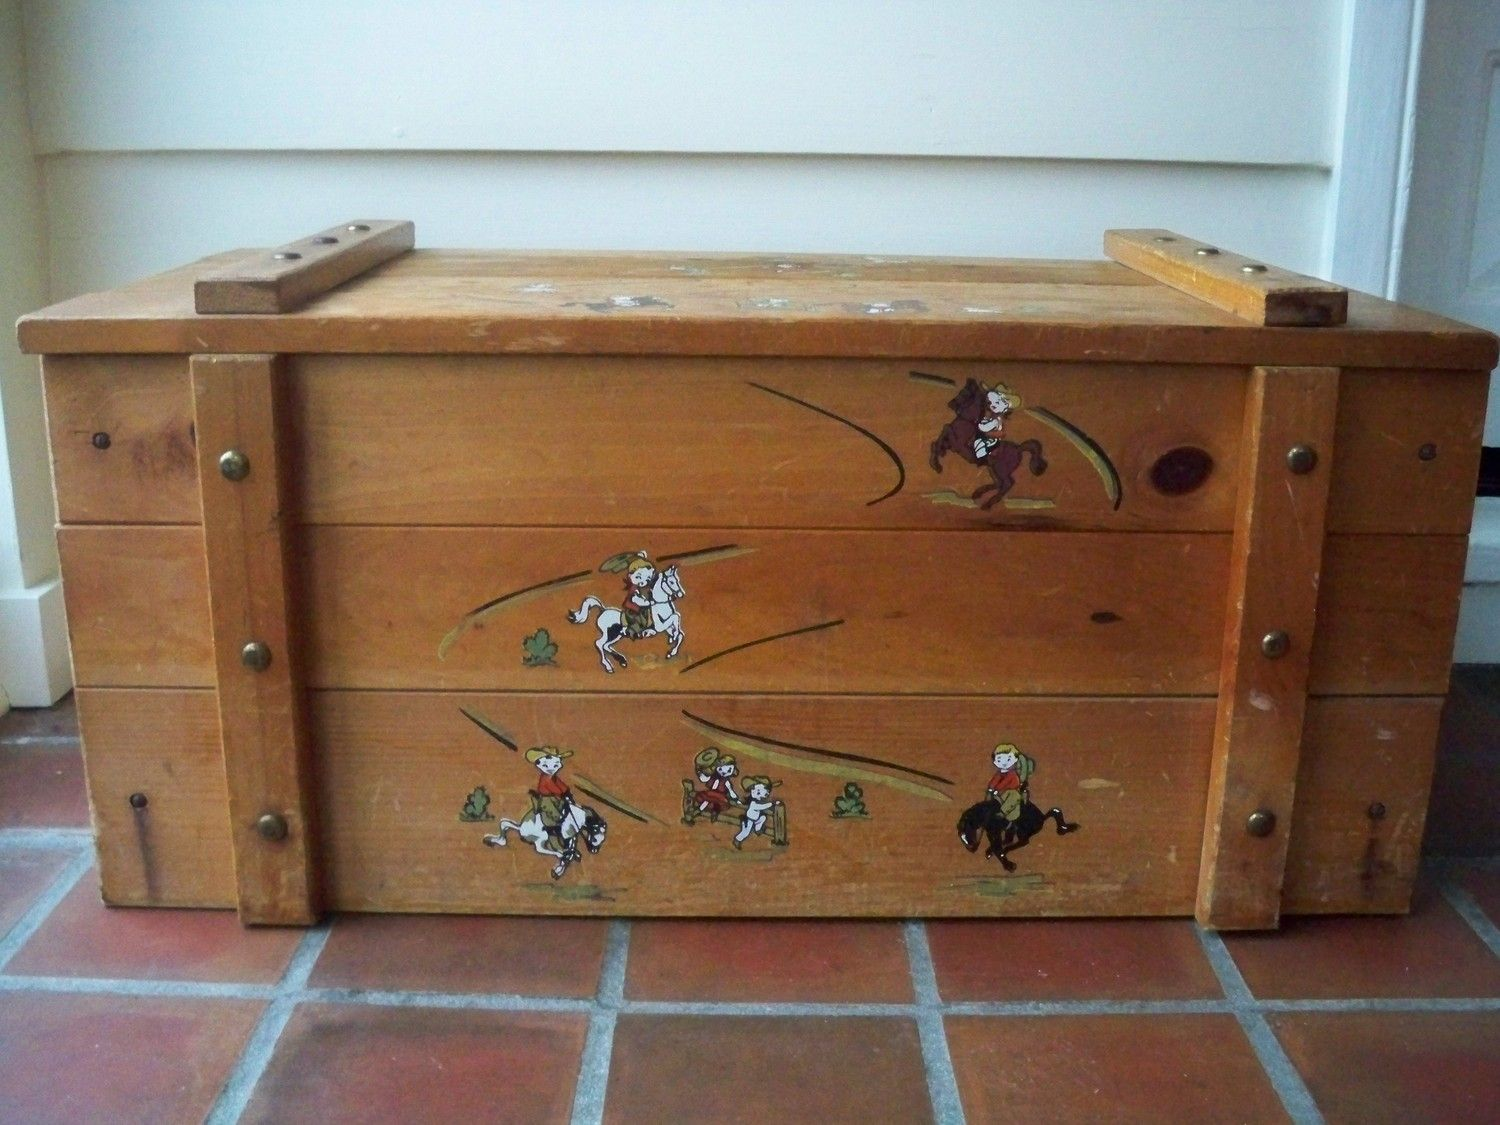 Vintage Cowboy Wood Toy Box Circa 1960s Wood Toy Box Wooden Toy Boxes Toy Boxes